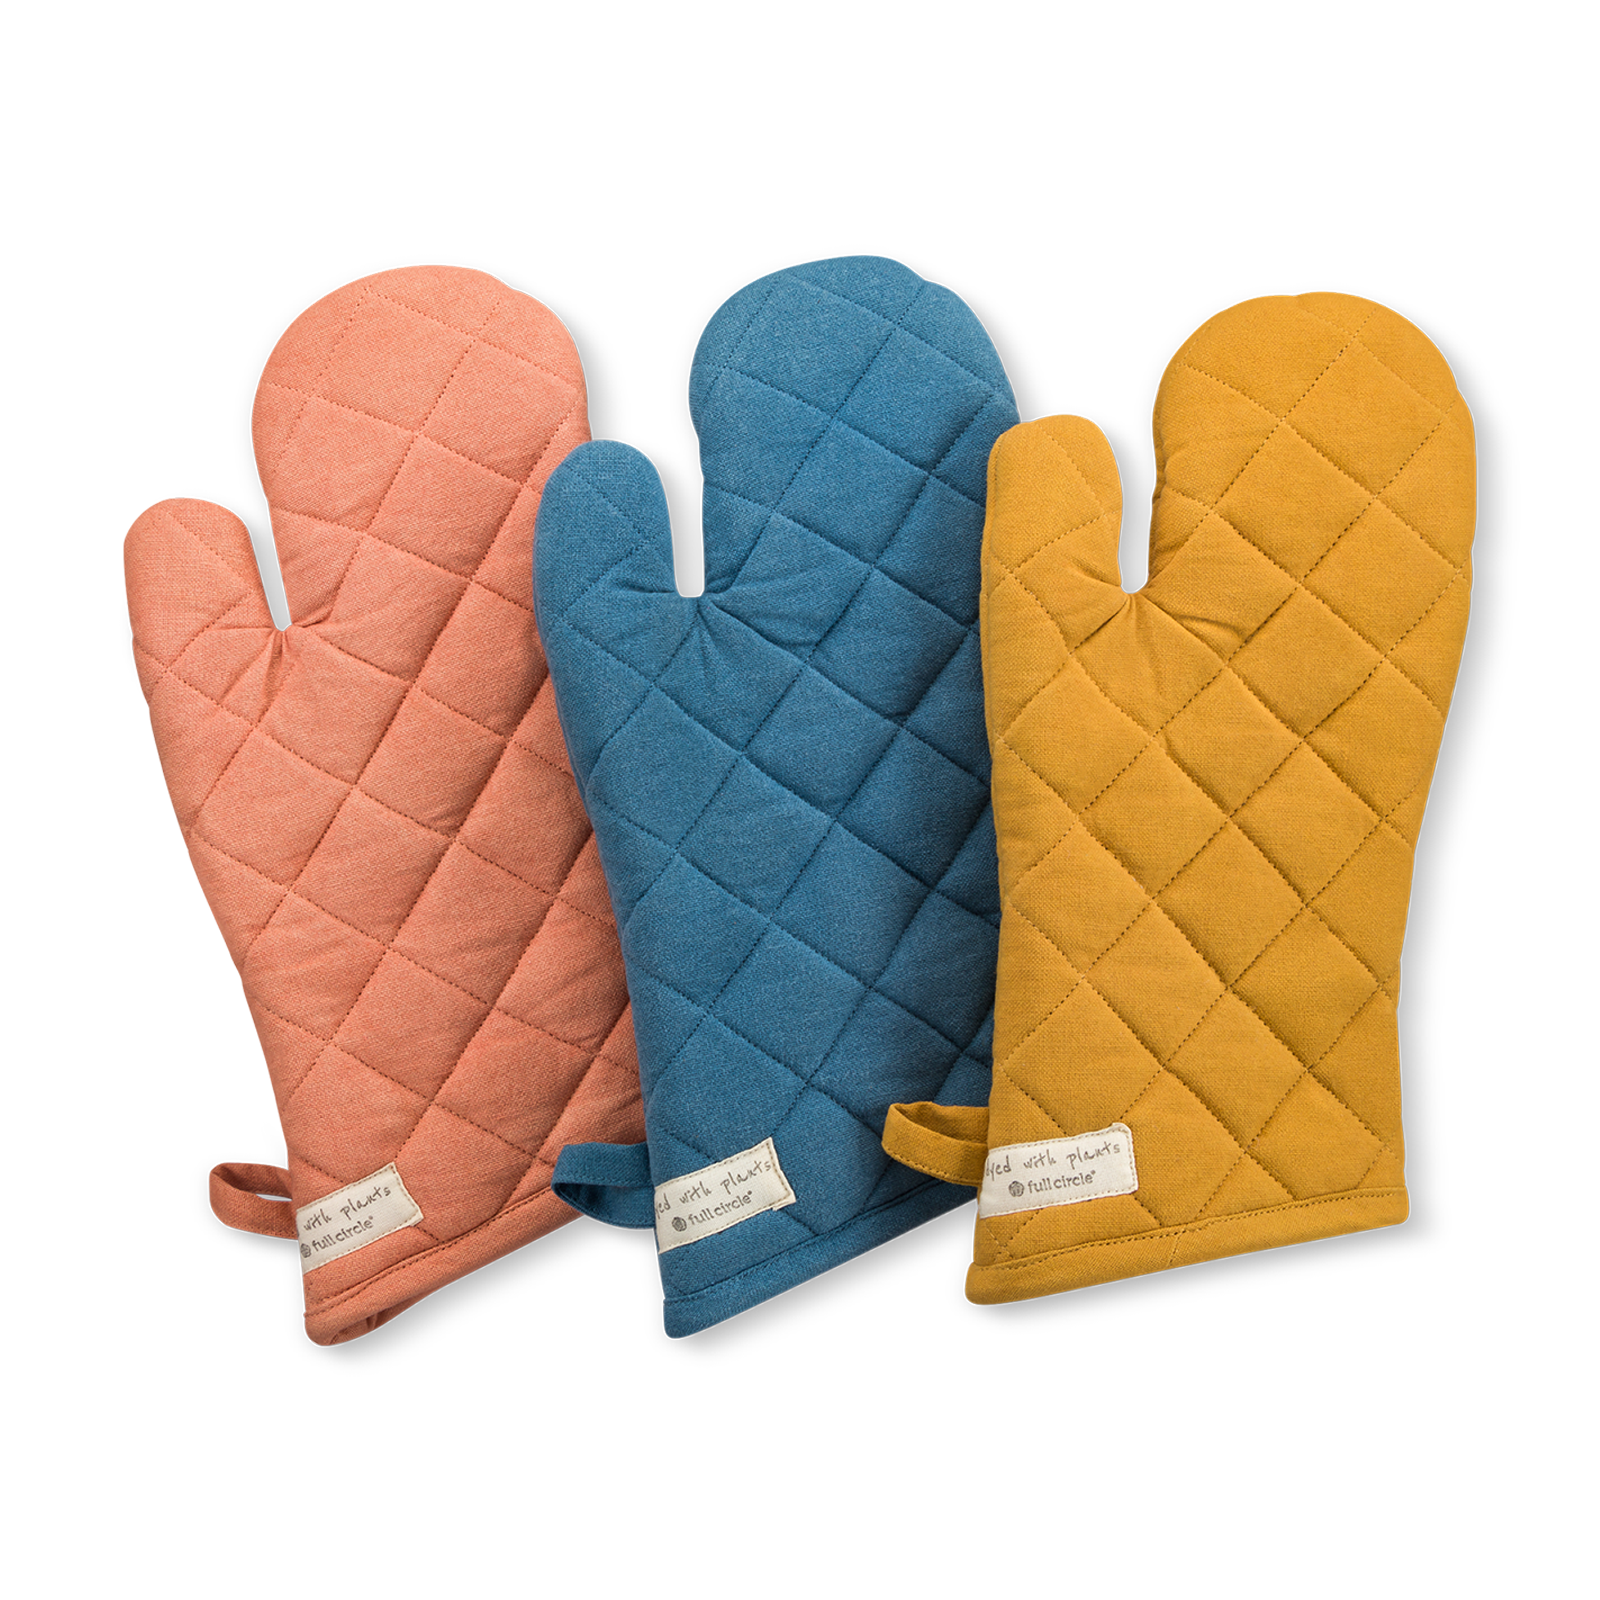 Oven mitts set product image